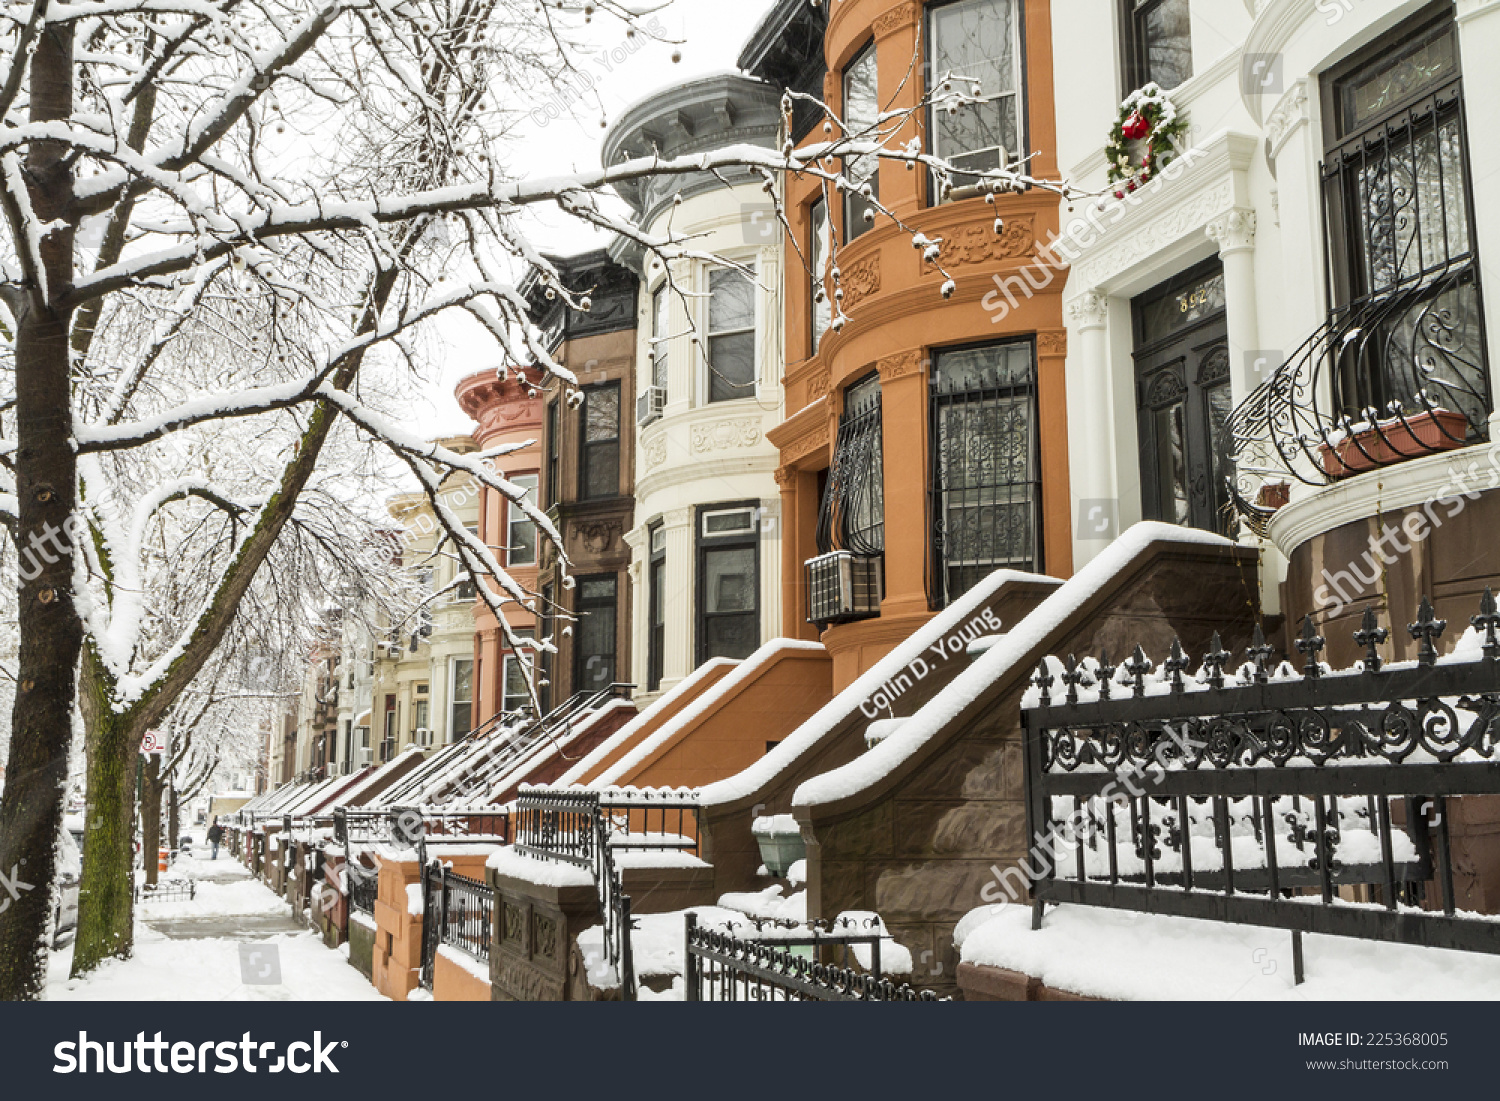 Snow On Trees Stoops Historic Brownstone Stock Photo 225368005 ...